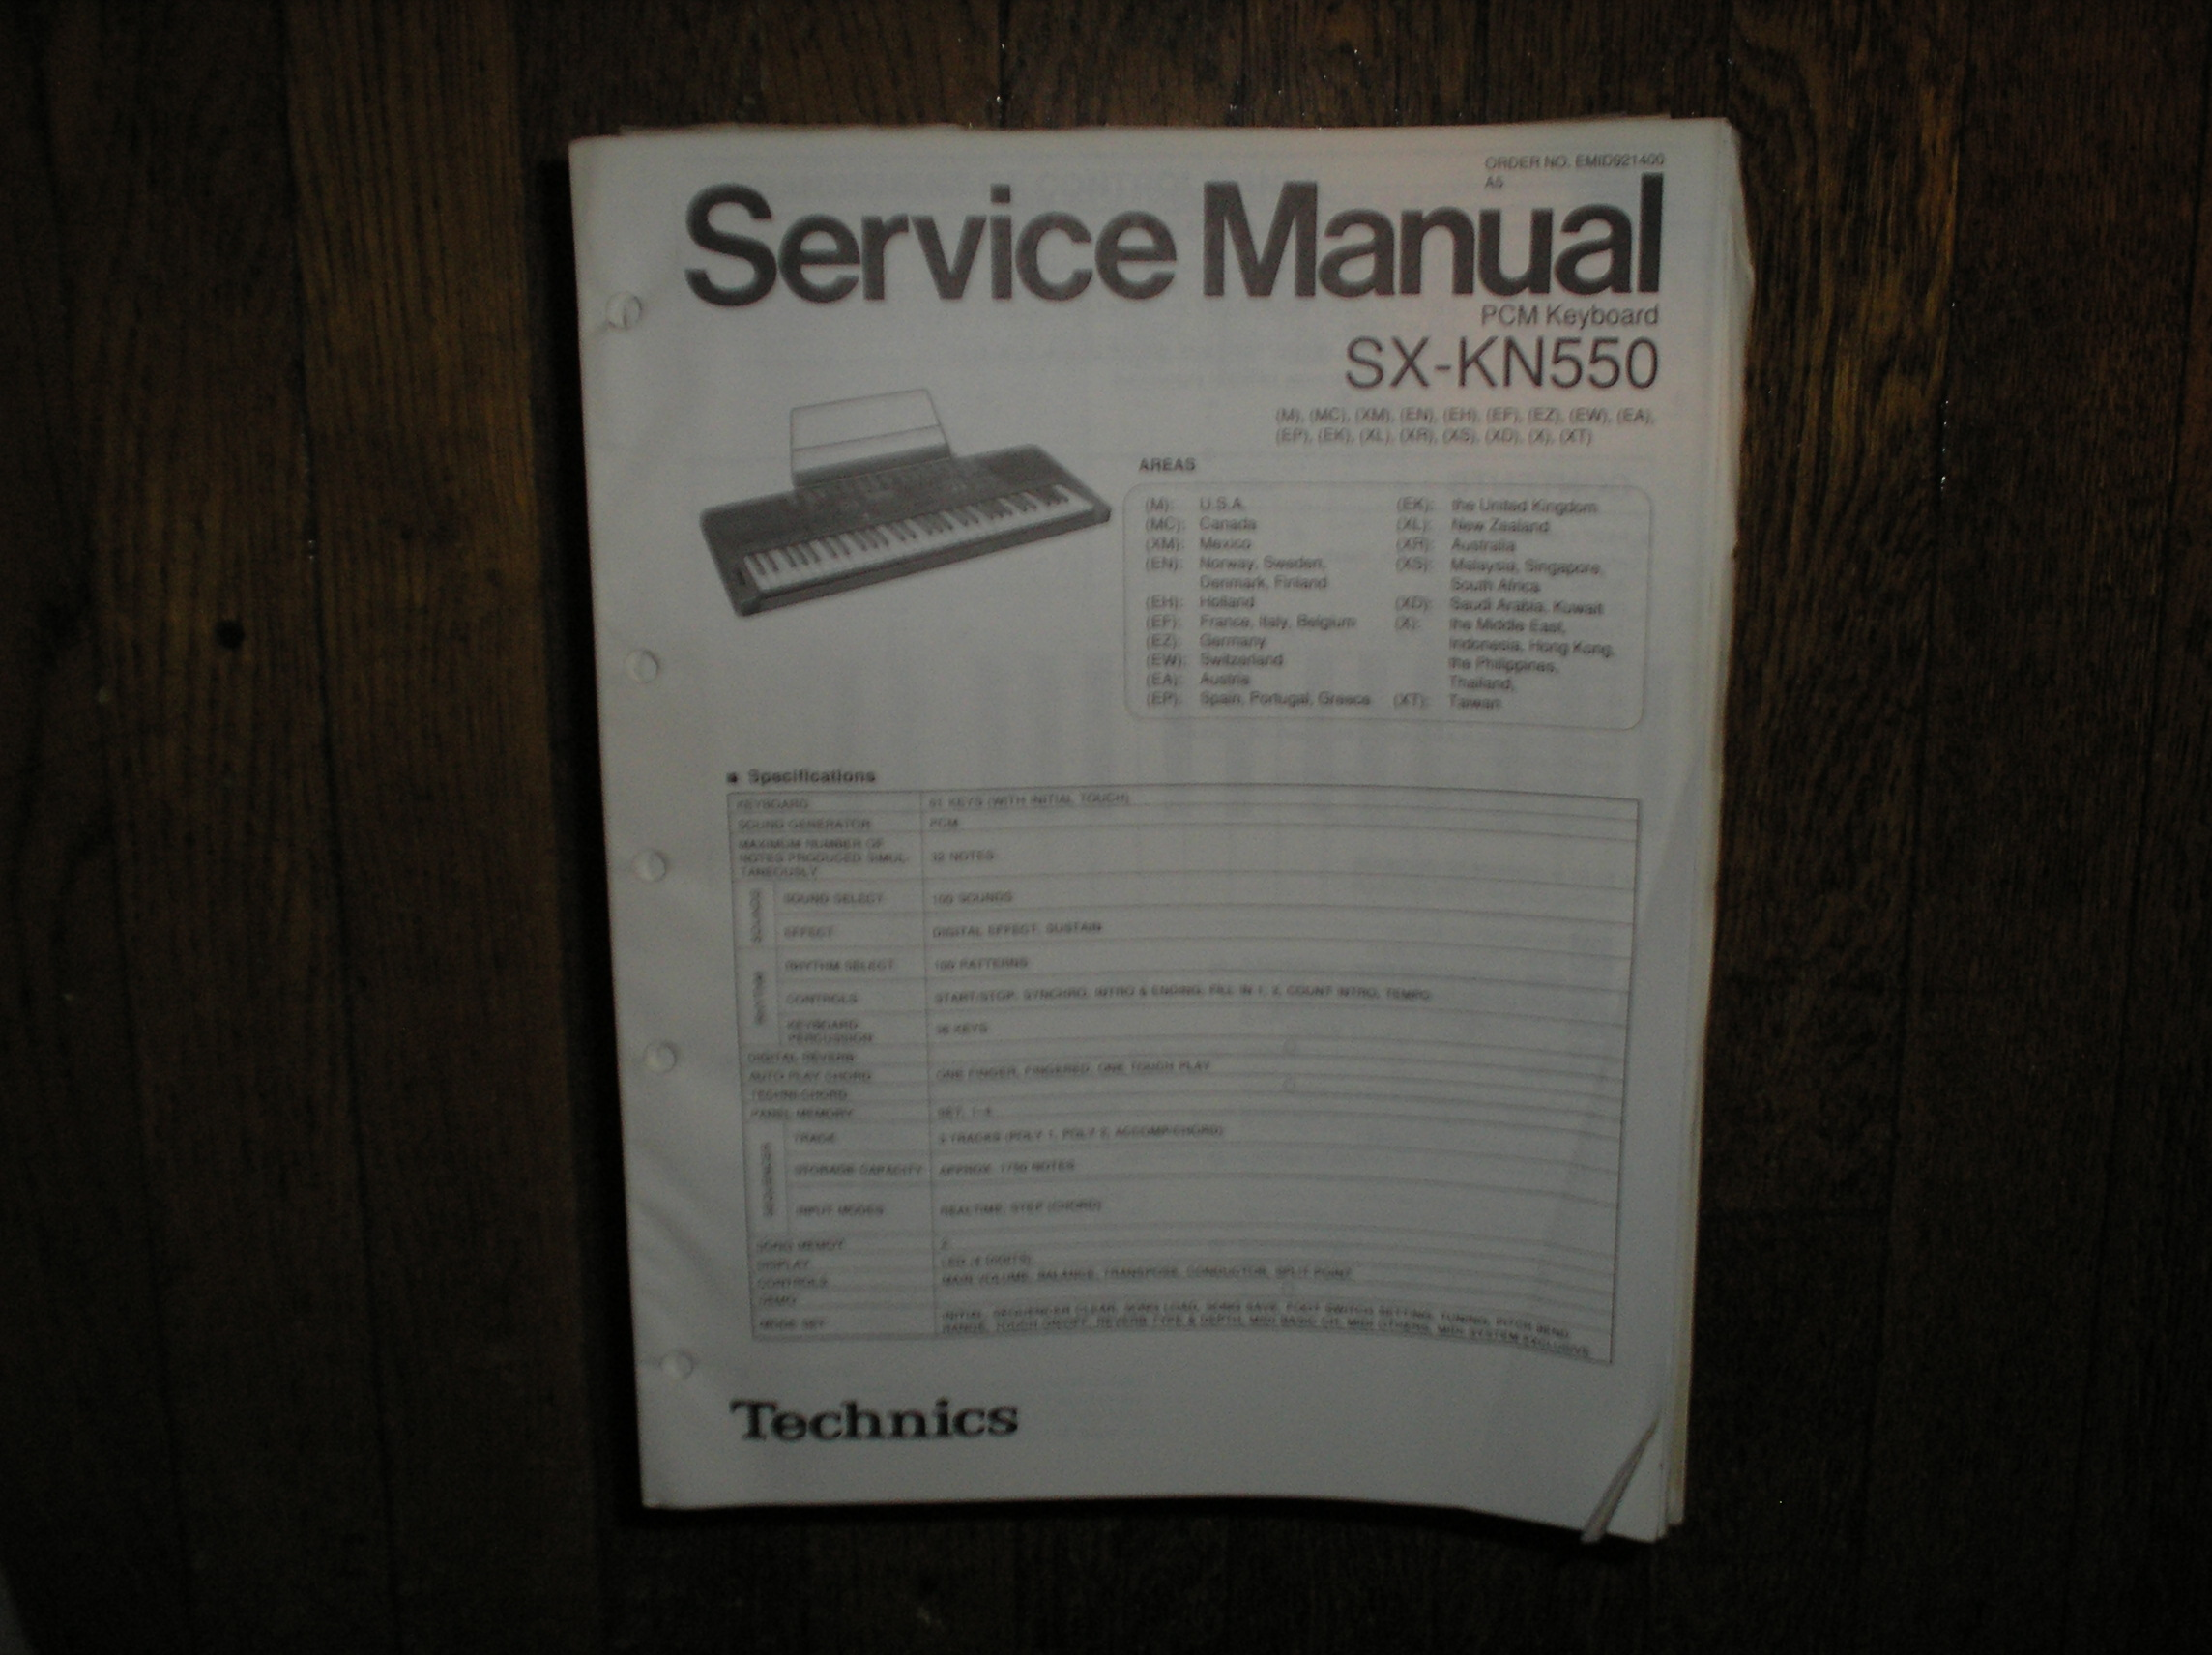 SX-KN550 PCM Keyboard Service Manual